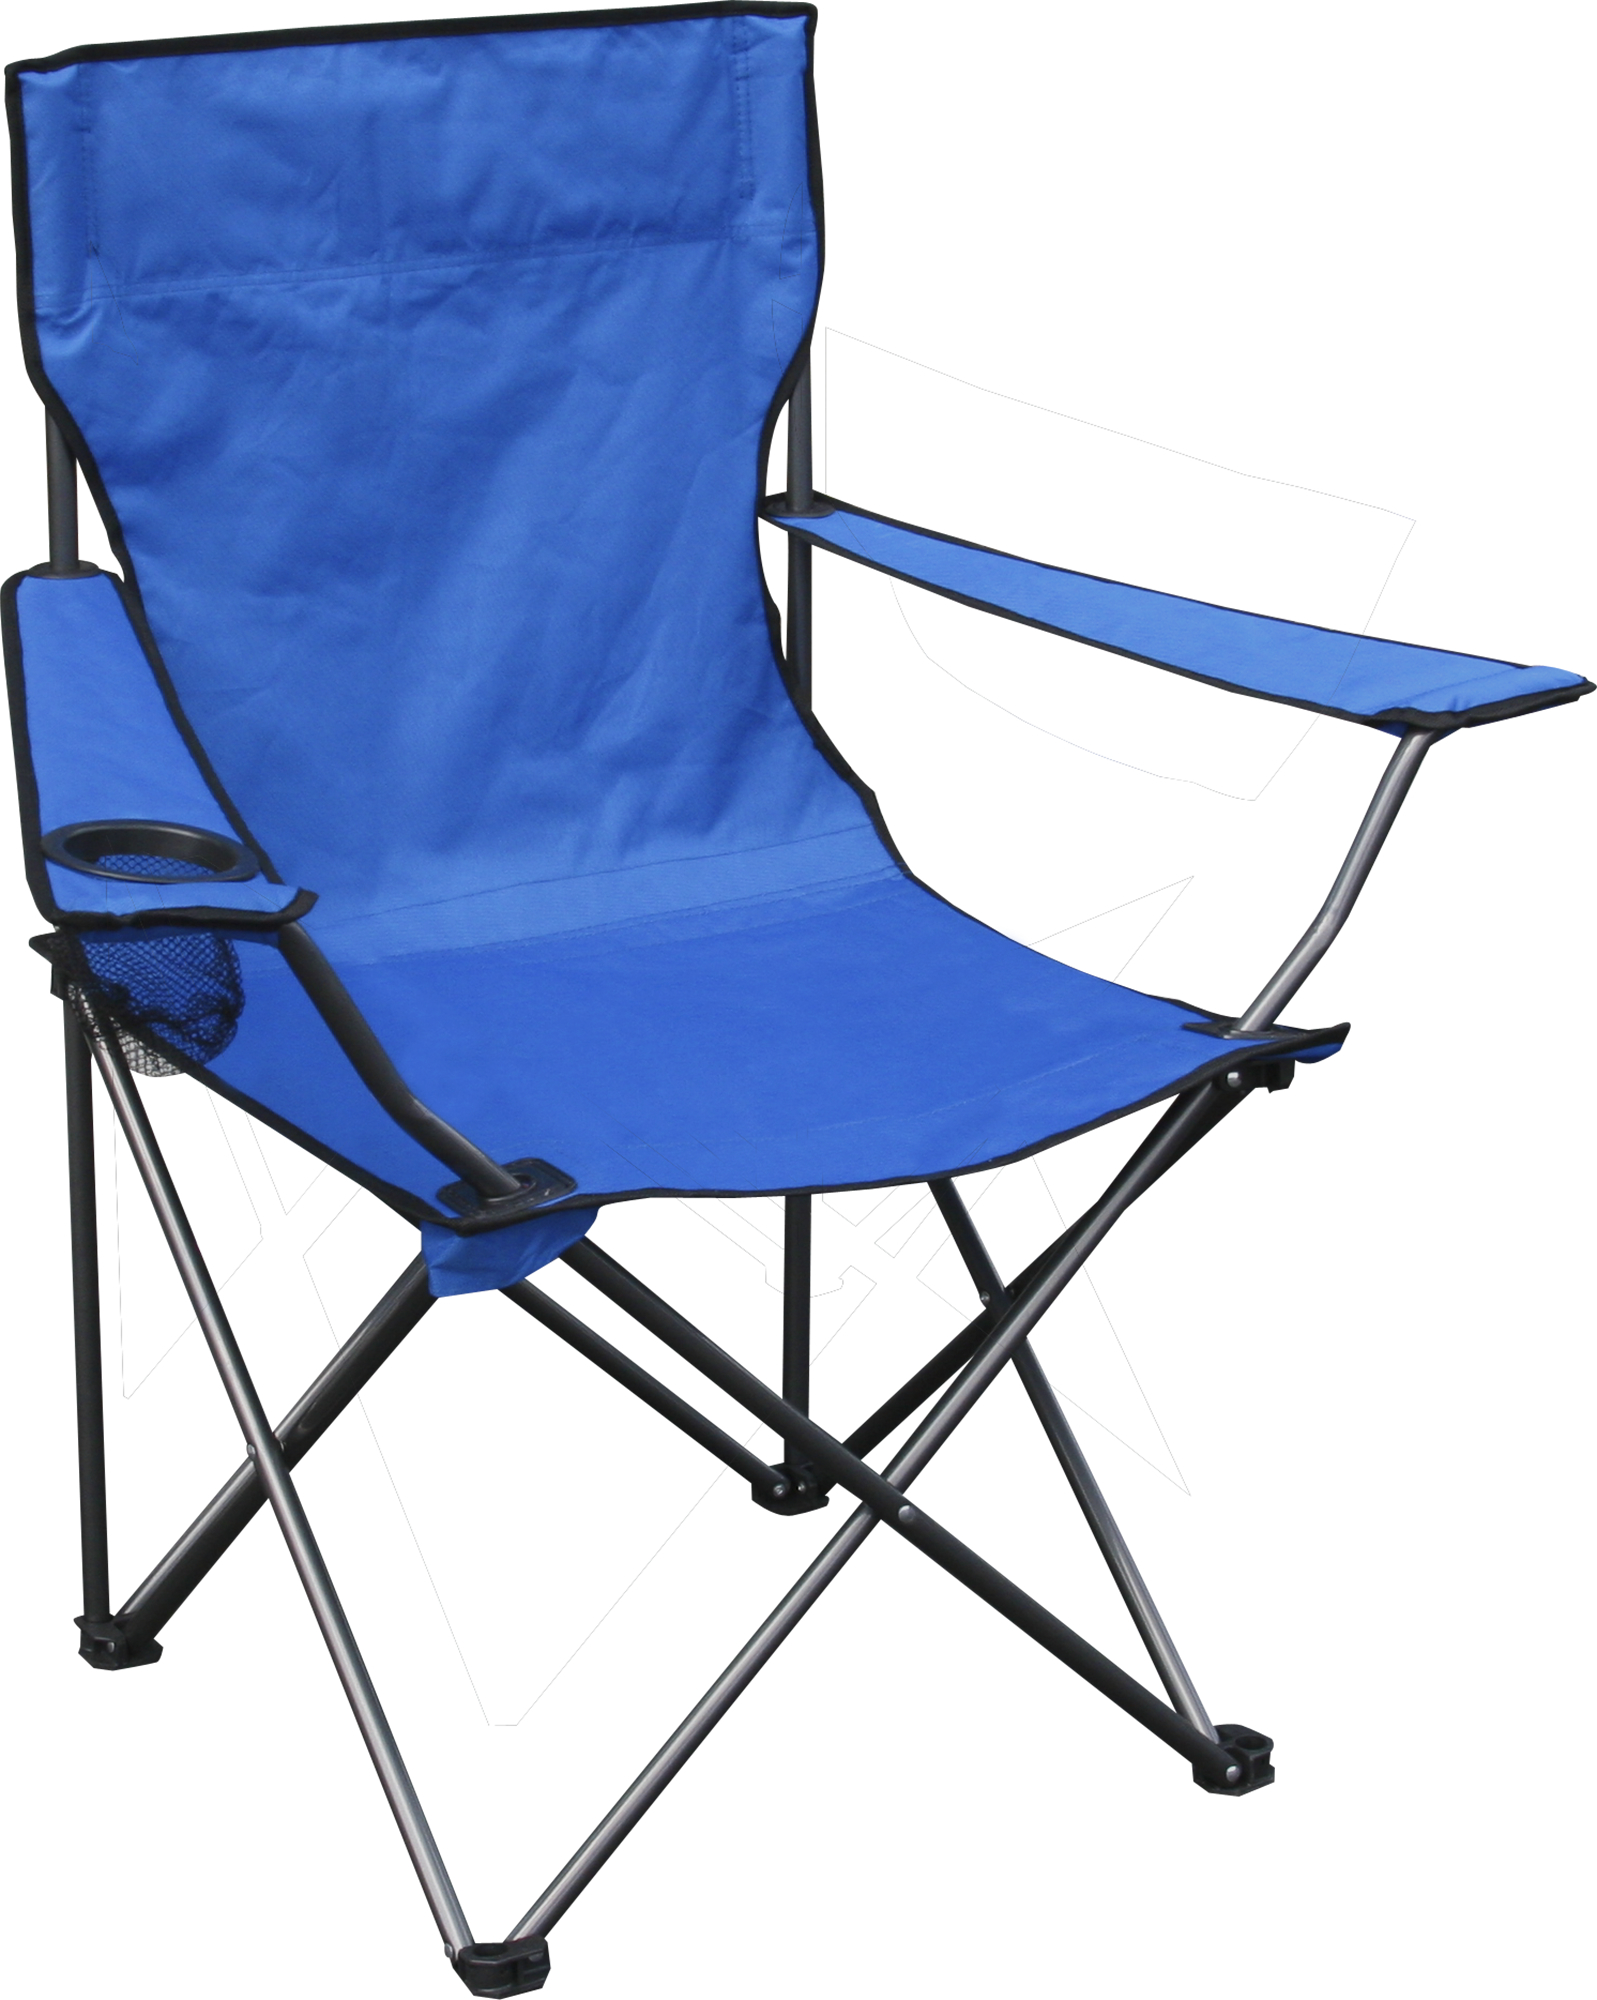 Quad Chair, Blue Fabric, Silver Frame